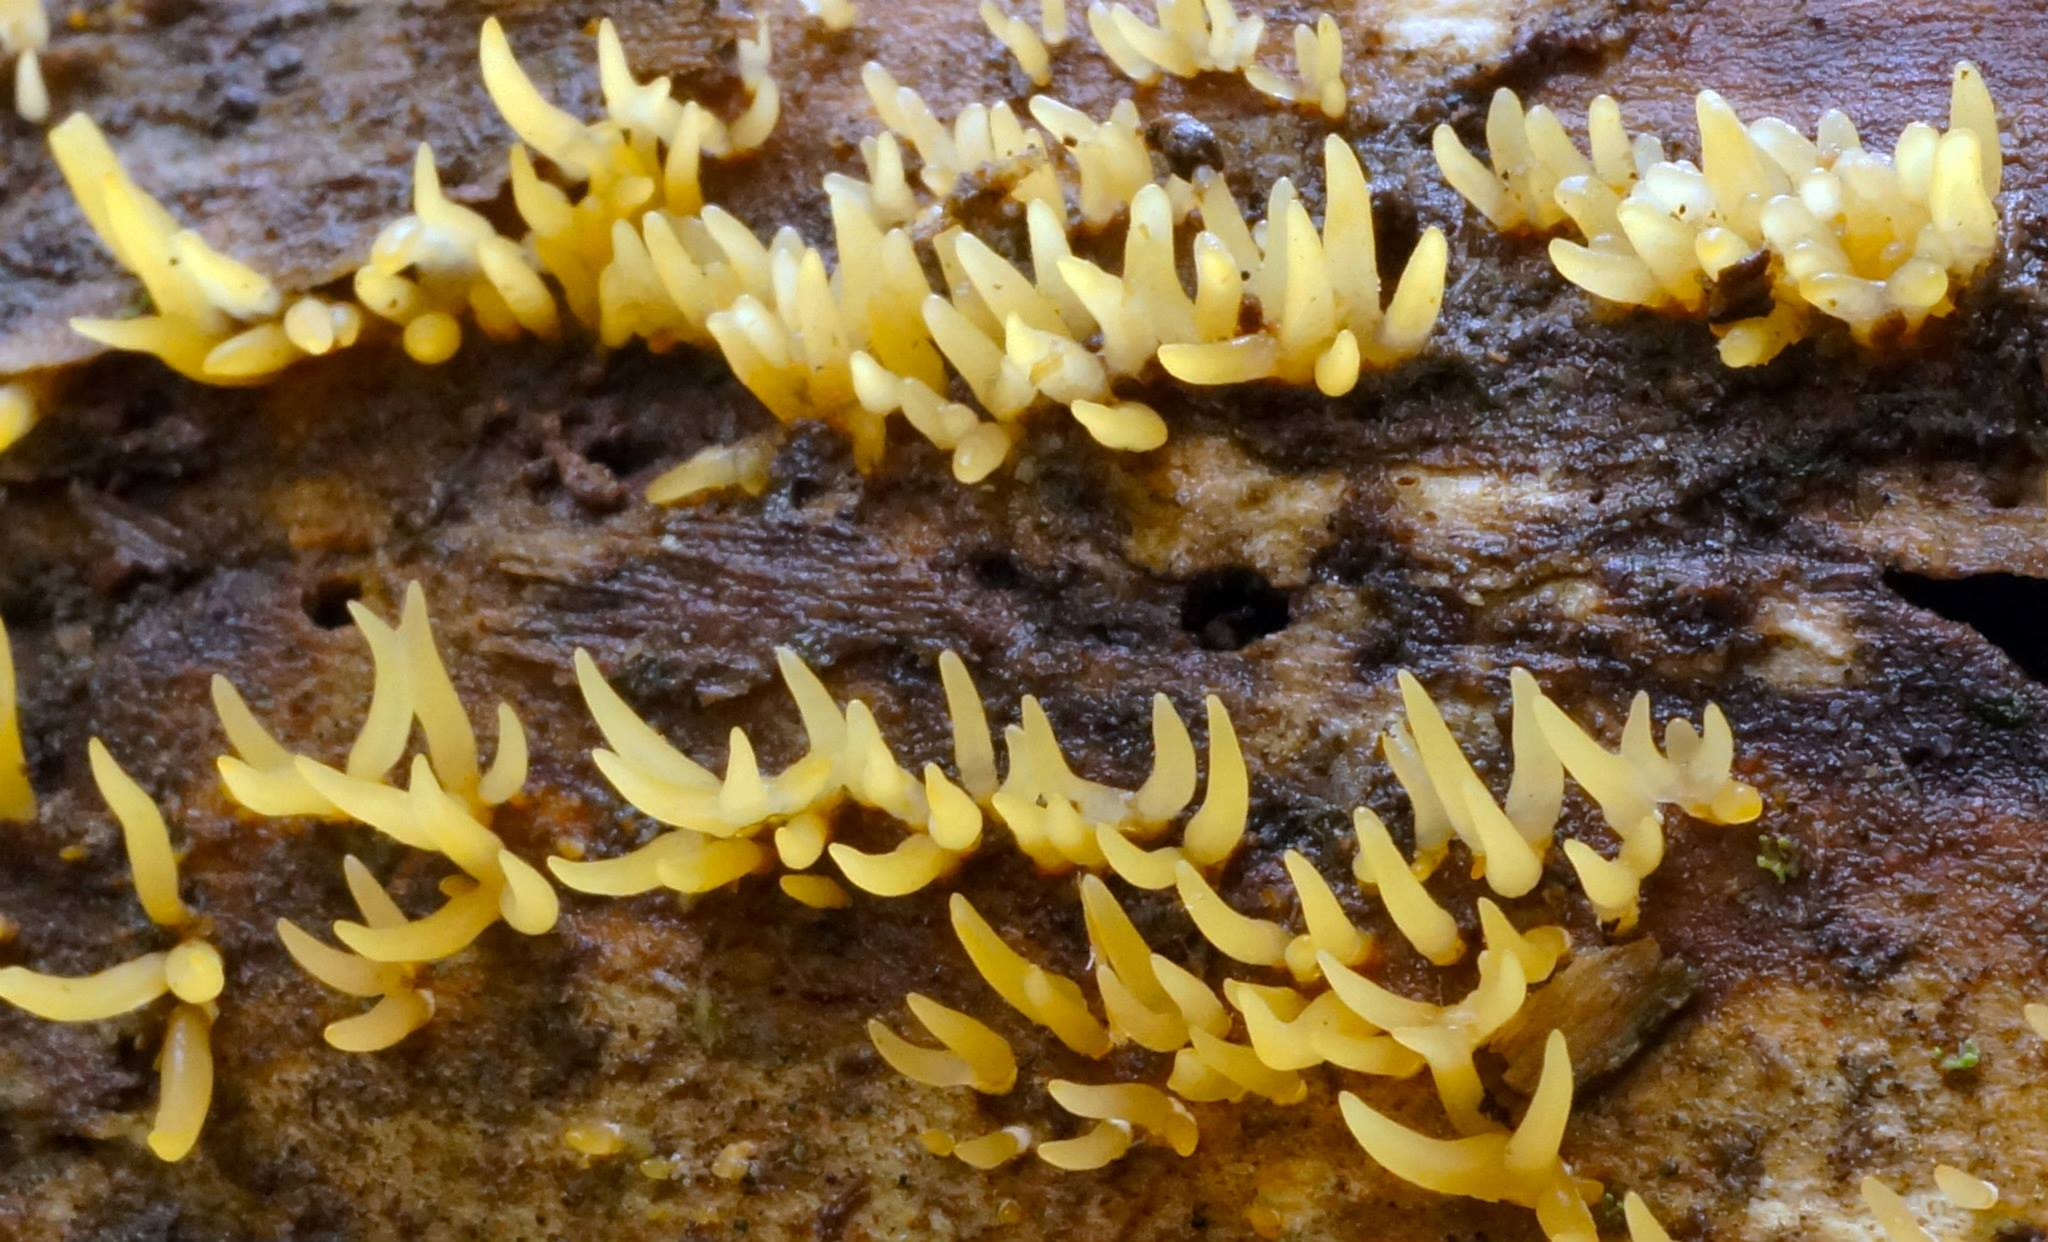 Calocera cornea (Photo courtesy of Tom Bigelow)